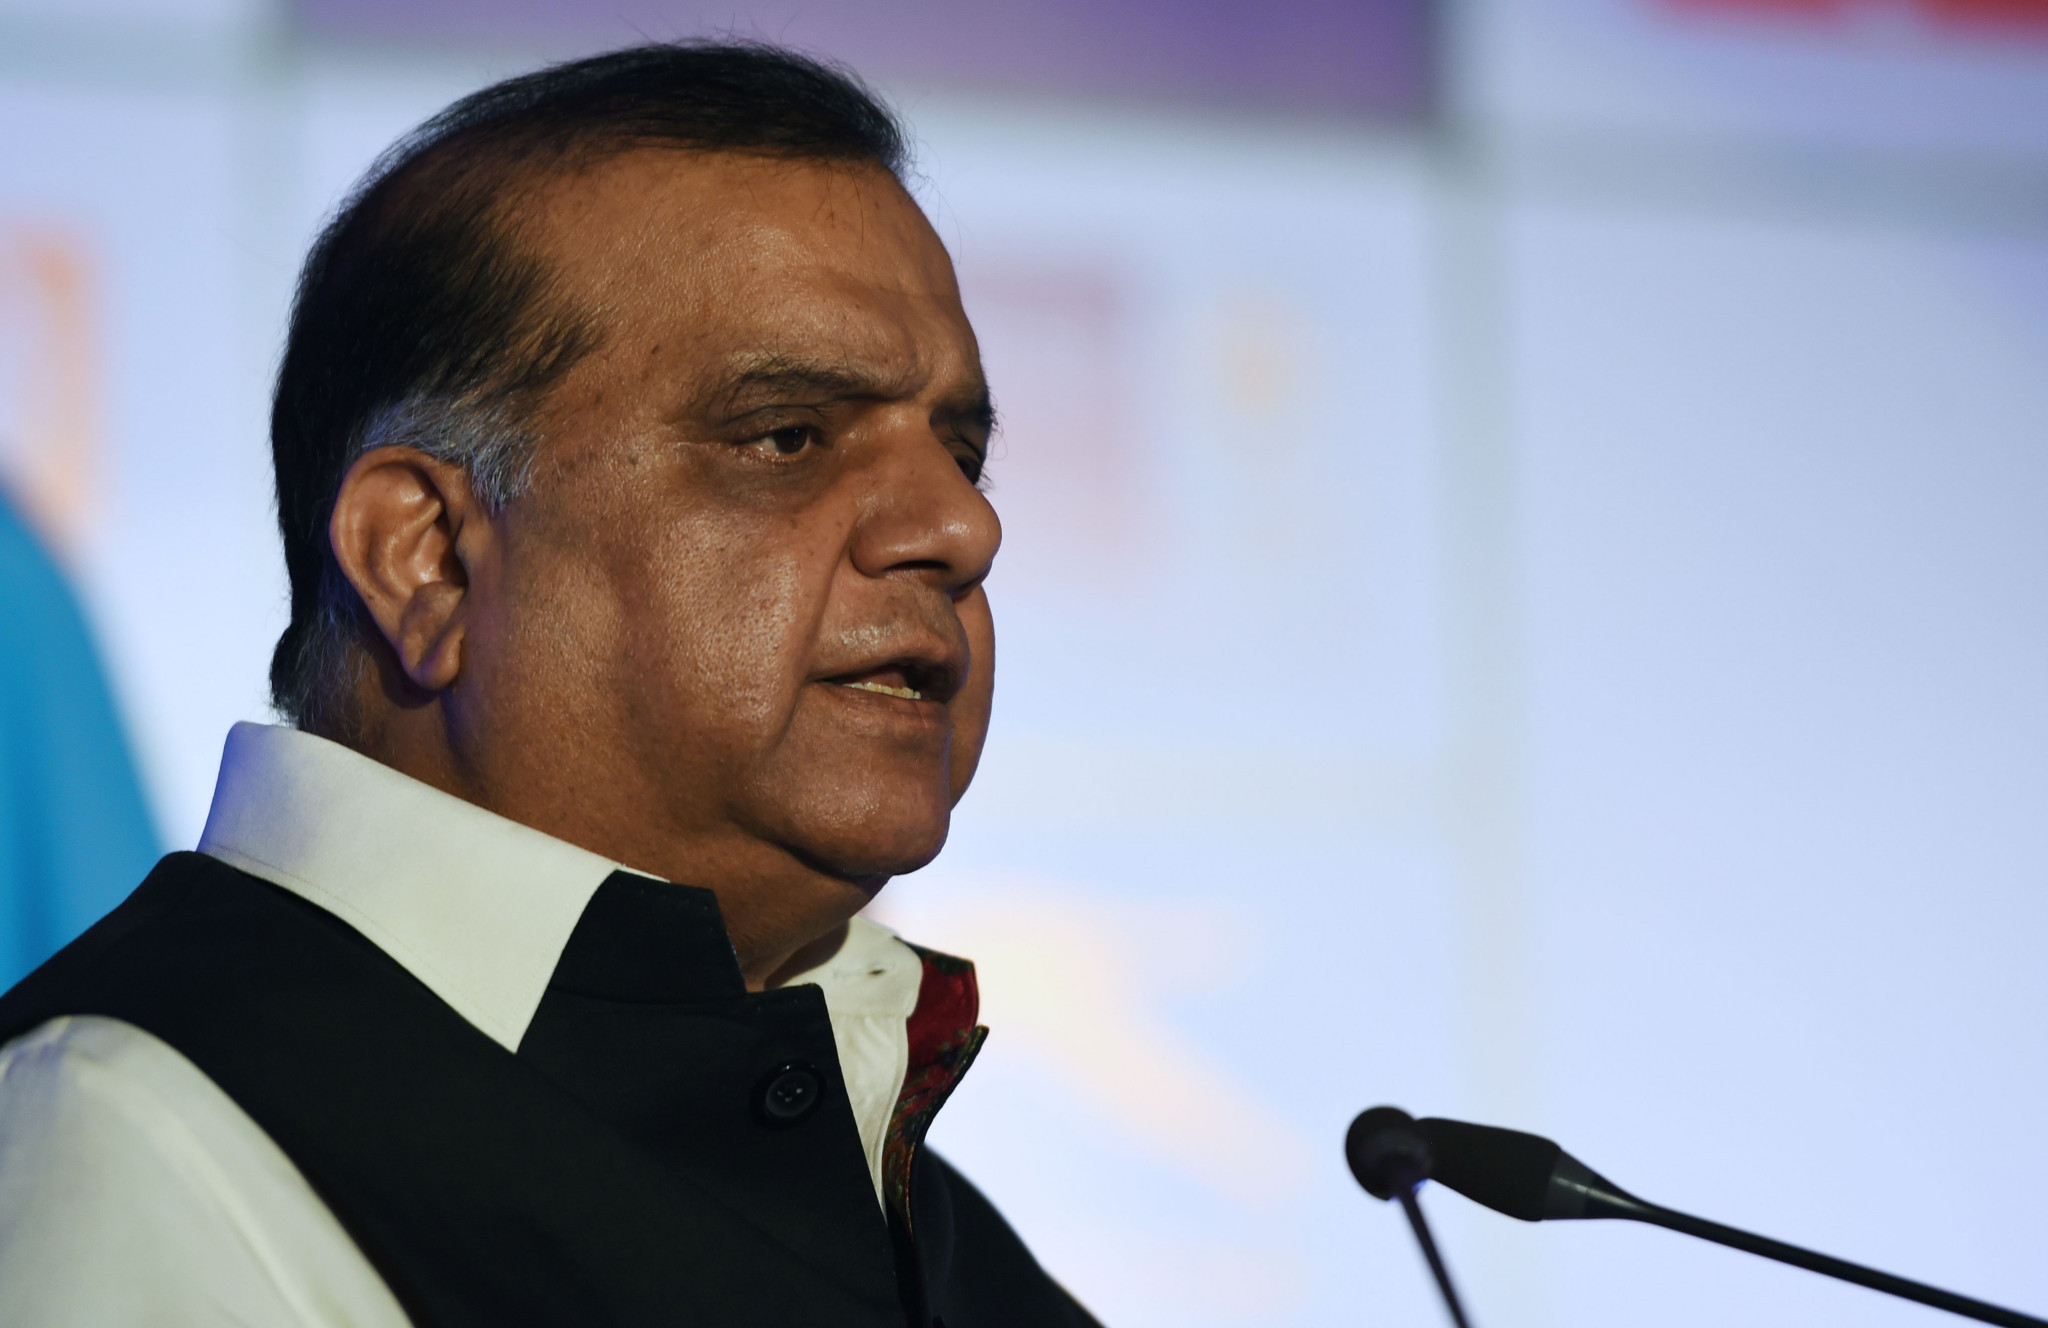 IOA President Narinder Batra has lent his support to the move and is set to meet the country's Sports Minister to discuss a potential boycott over the omission of shooting from Birmingham 2022 ©Getty Images